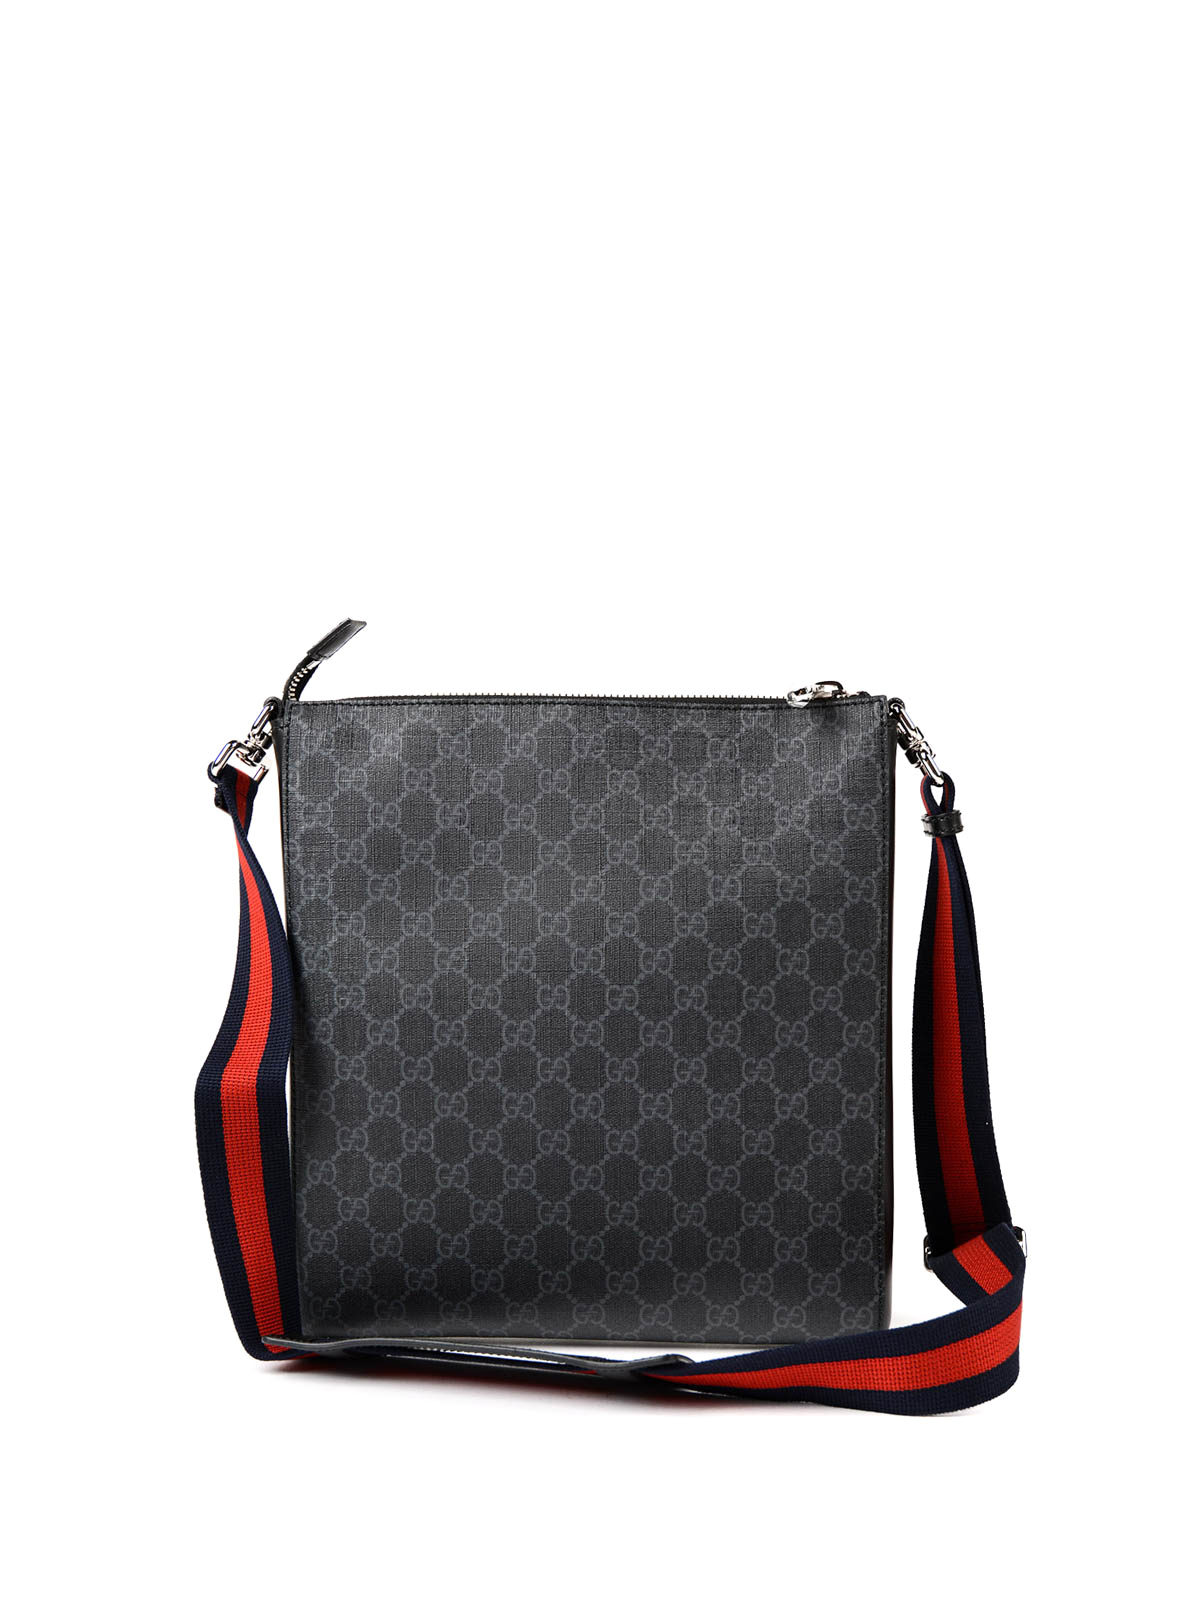 0c085e79796621 Gucci - GG Supreme canvas messenger bag - shoulder bags - 474137 ...